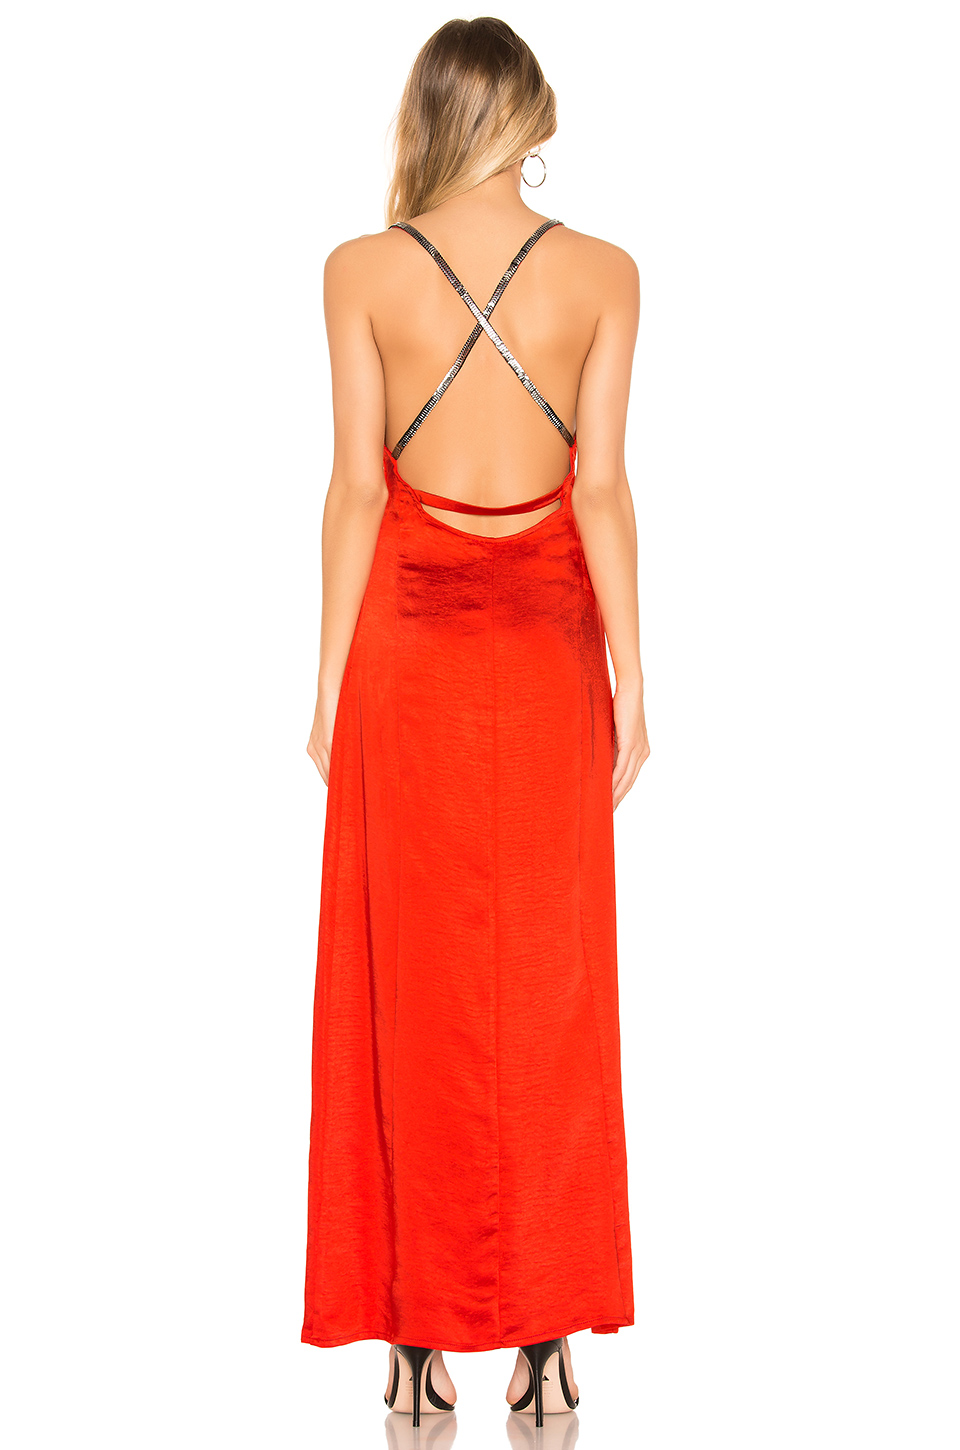 03b49dccc62 Summer Cross Back Maxi Dress  by the way. Summer Cross Back Maxi Dress ...